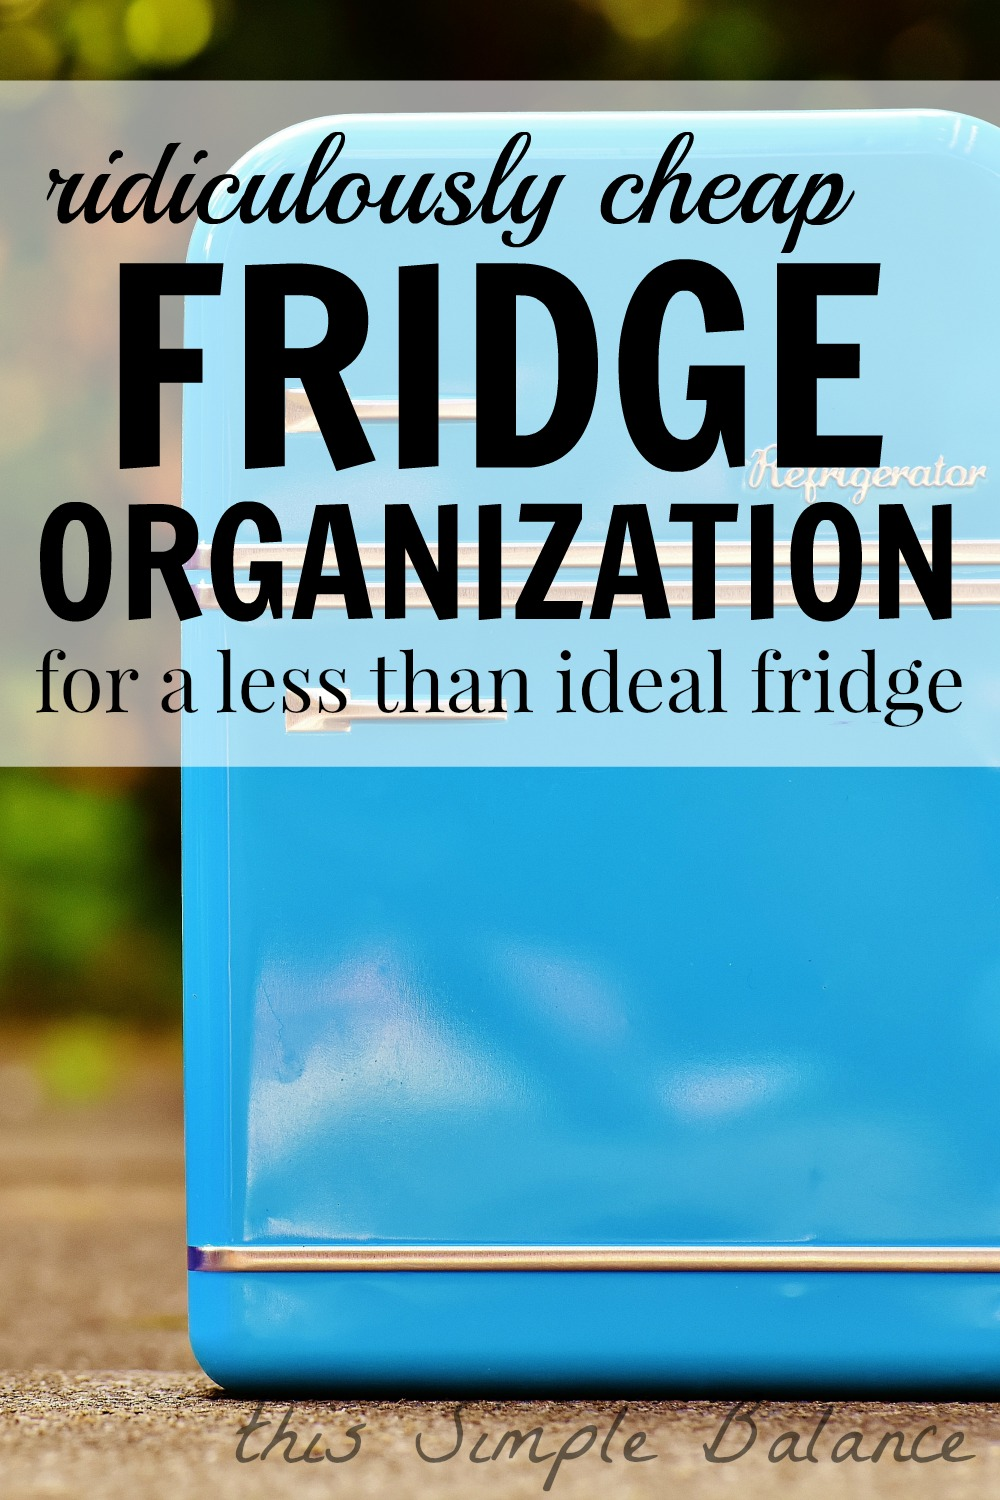 refrigerator organization, fridge organization ideas dollar store